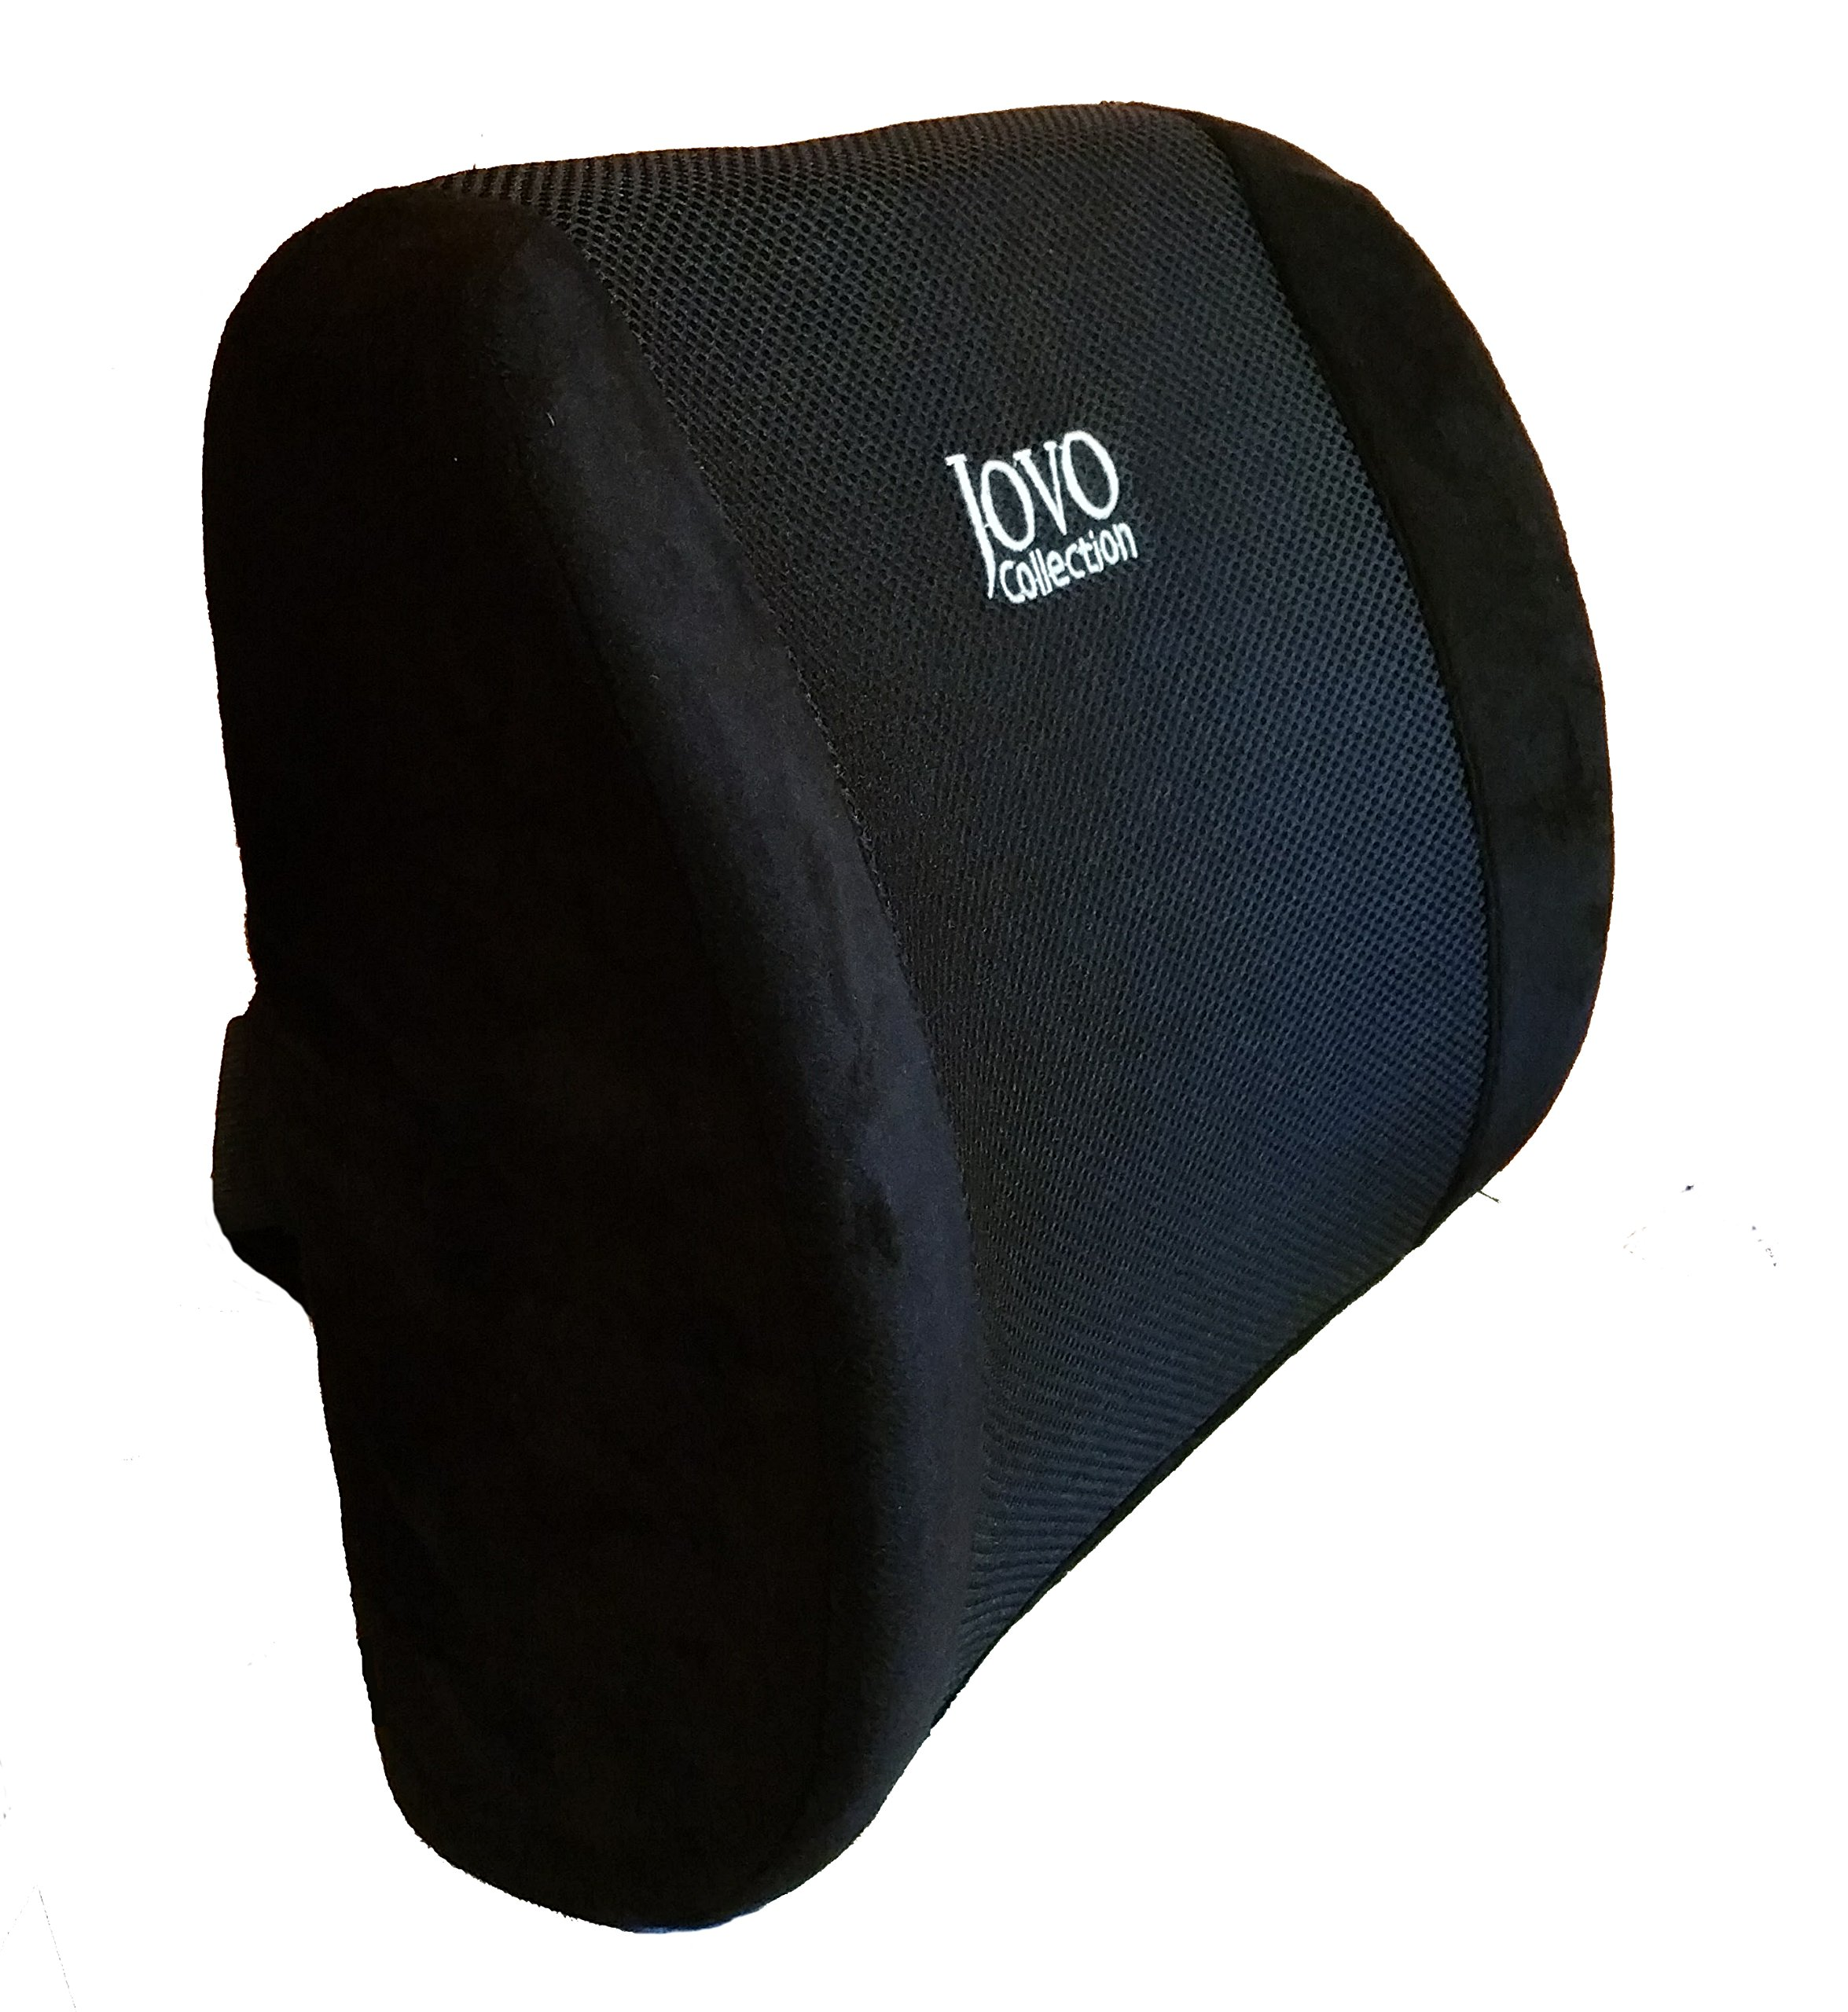 Memory Foam Lumbar Support Pillow Back Cushion Designed for Lower Back Pain Relief by Jovo Collection - Provides Maximum Back Support for Car, Home/Computer/Office Chair, Recliner - Adjustable Strap